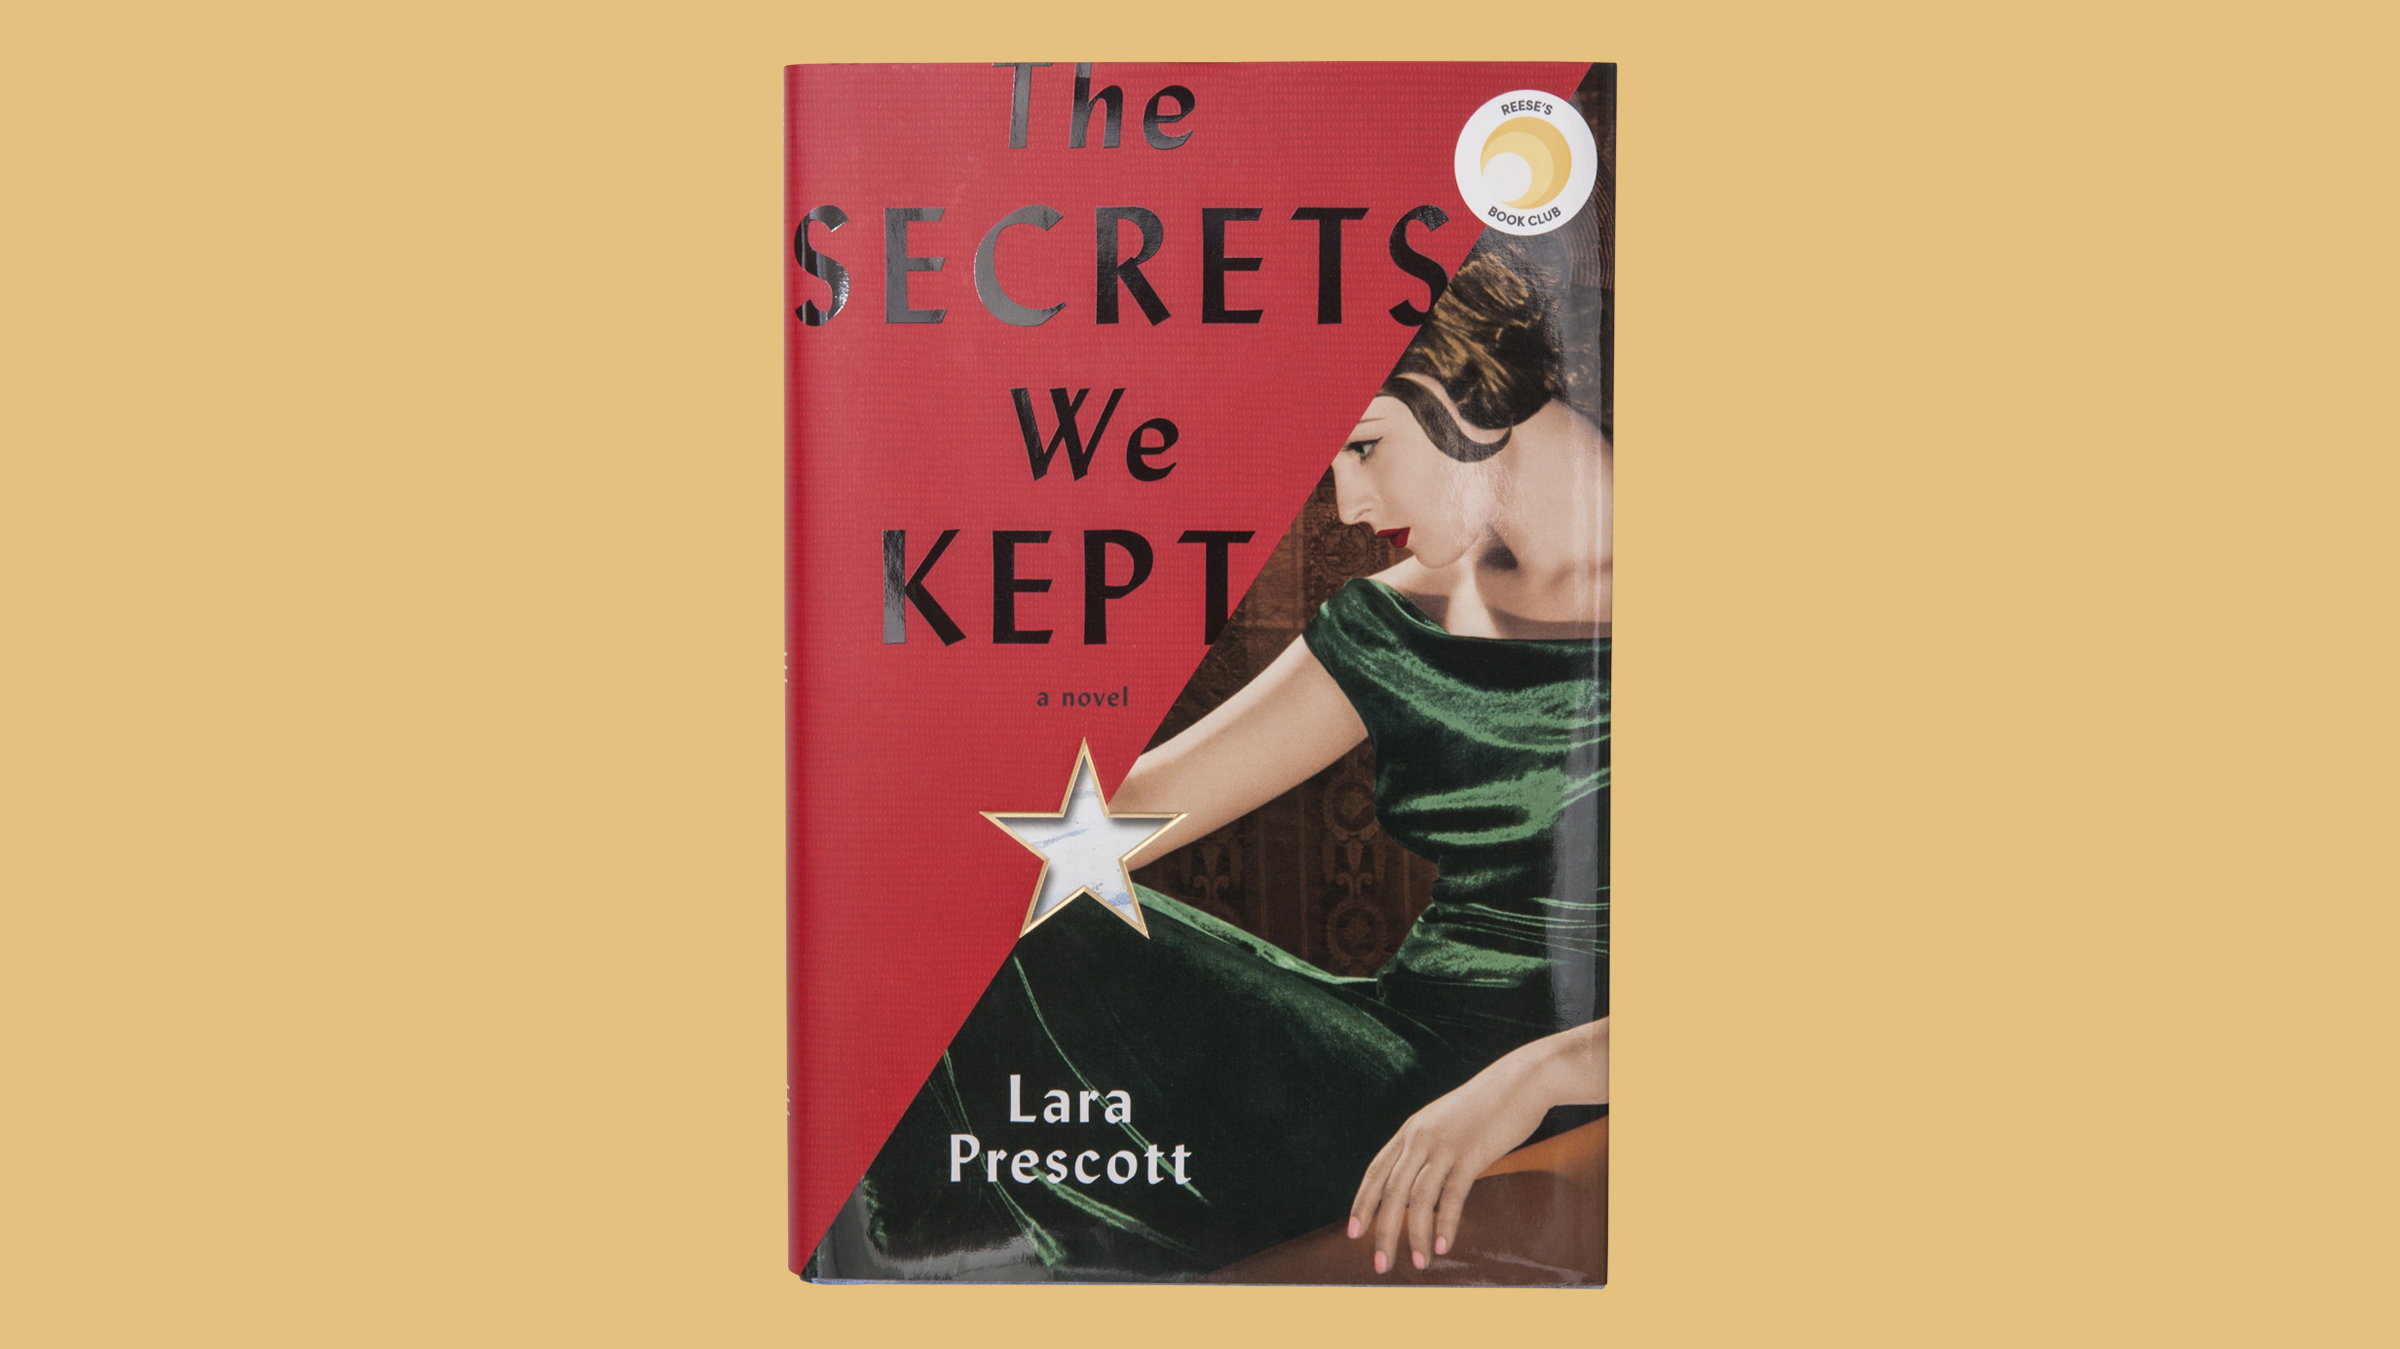 'Unlike some of the men, we could keep our secrets.'